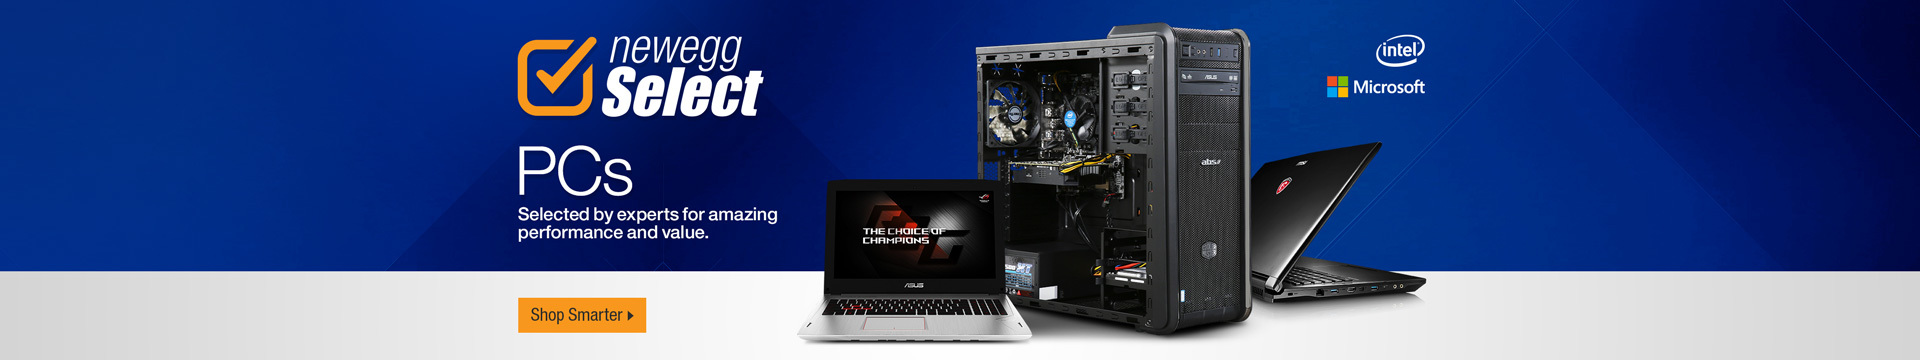 Newegg Select PCs